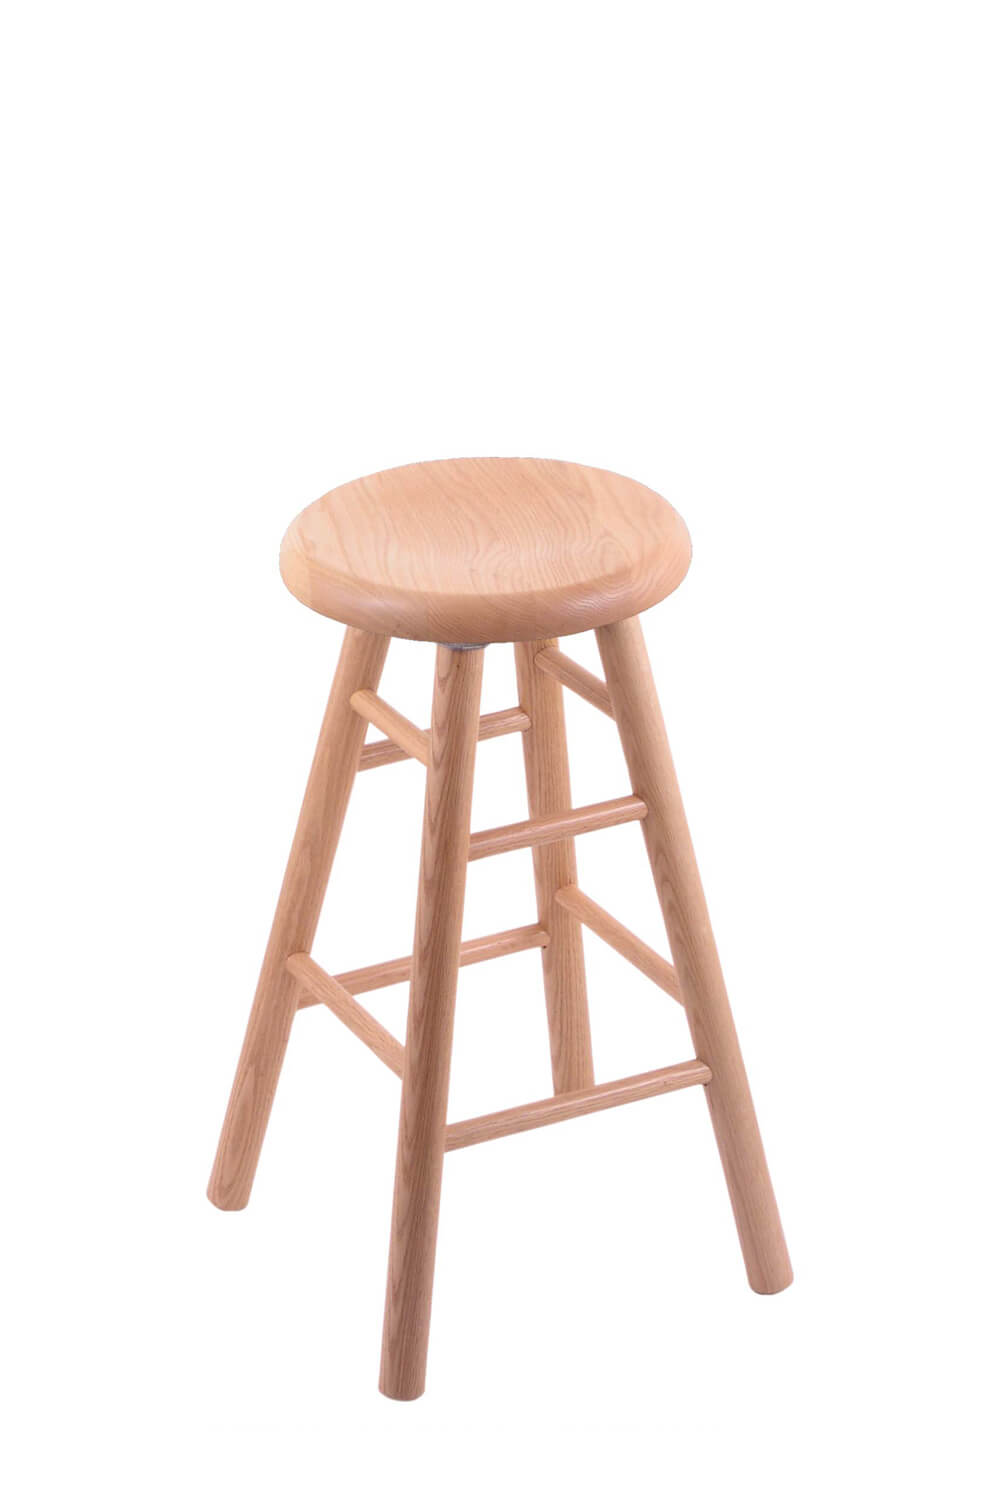 Holland S Saddle Dish Backless Wood Swivel Bar Stool With Smooth Legs In Natural Oak Finish